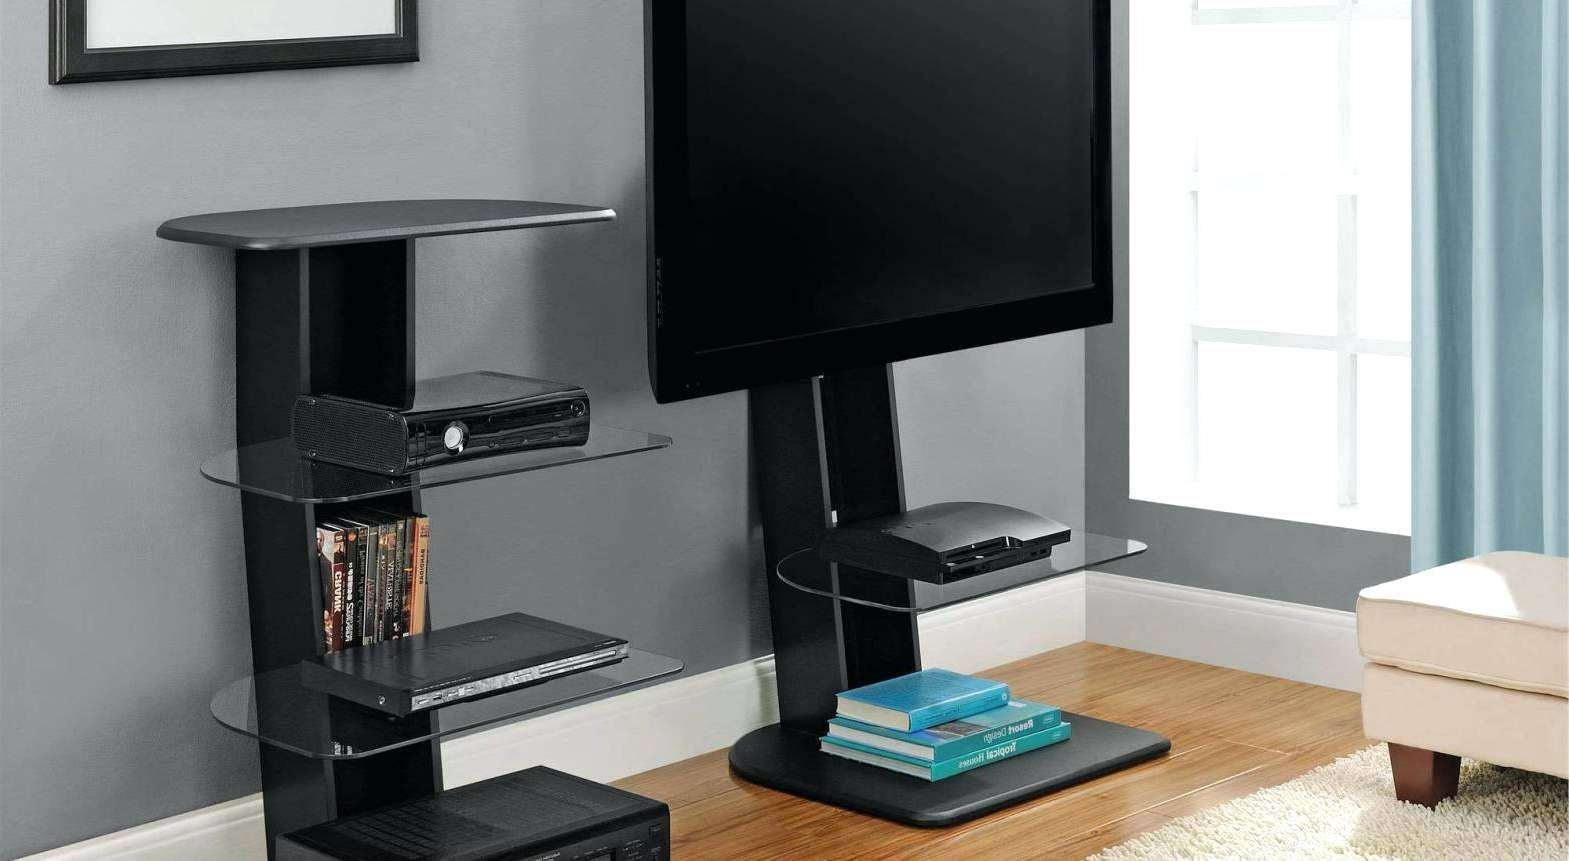 Tv Stand : 24 Inch Tv Stand Corner Stands Awesome Black For 24 For 24 Inch Tv Stands (View 13 of 15)